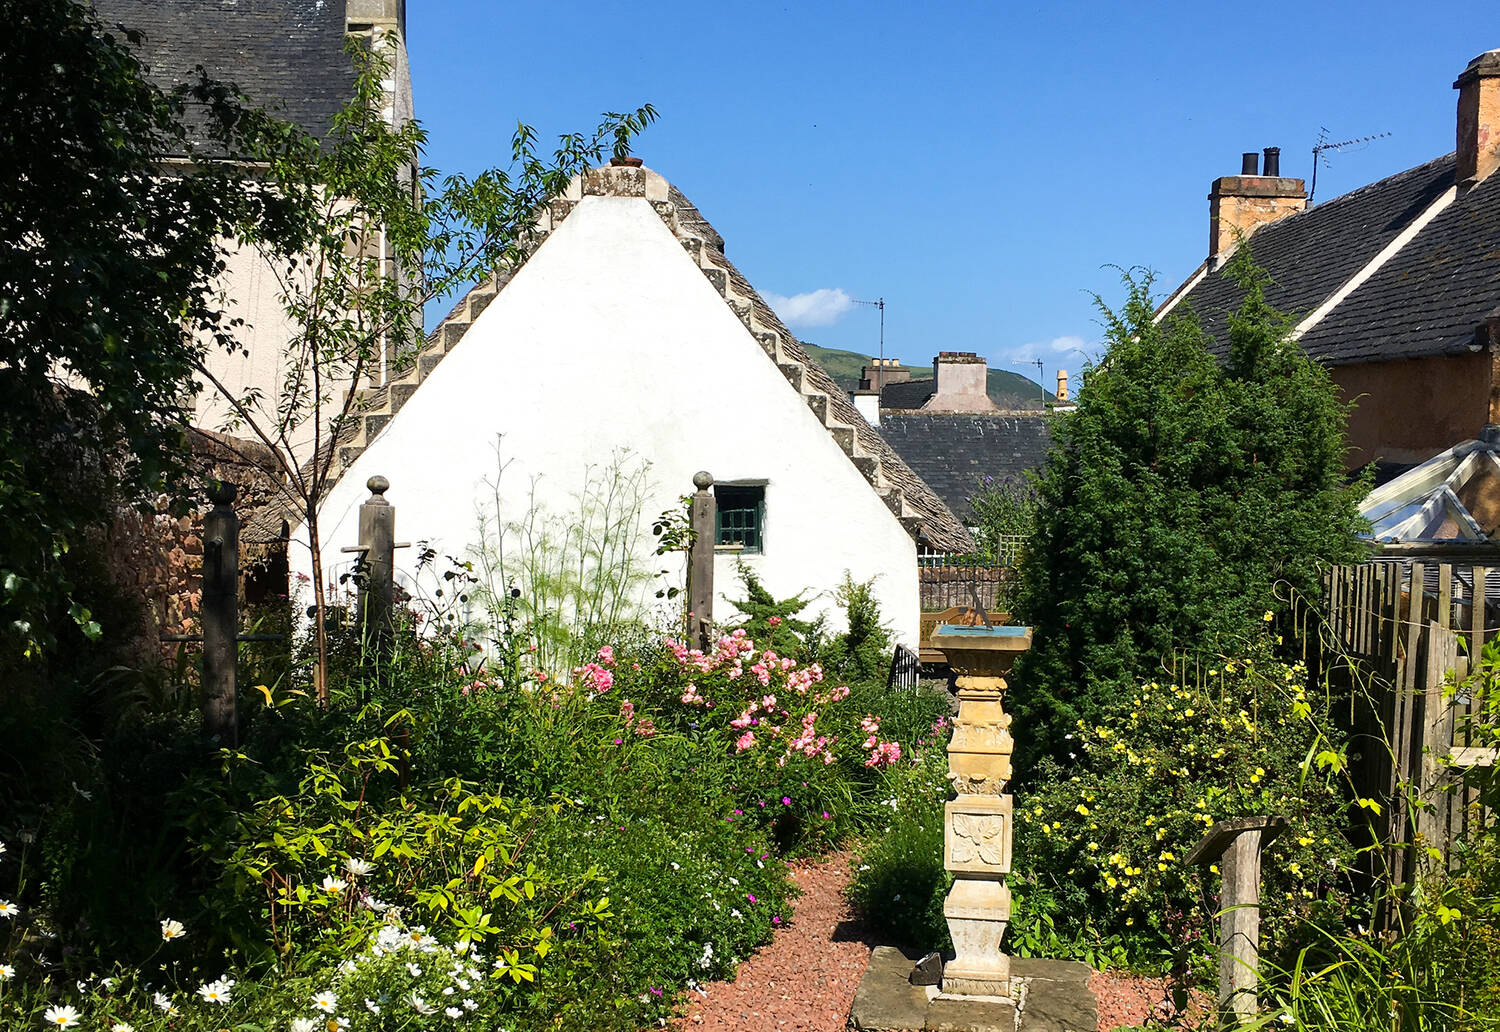 View of Hugh Miller's Birthplace Cottage from the garden